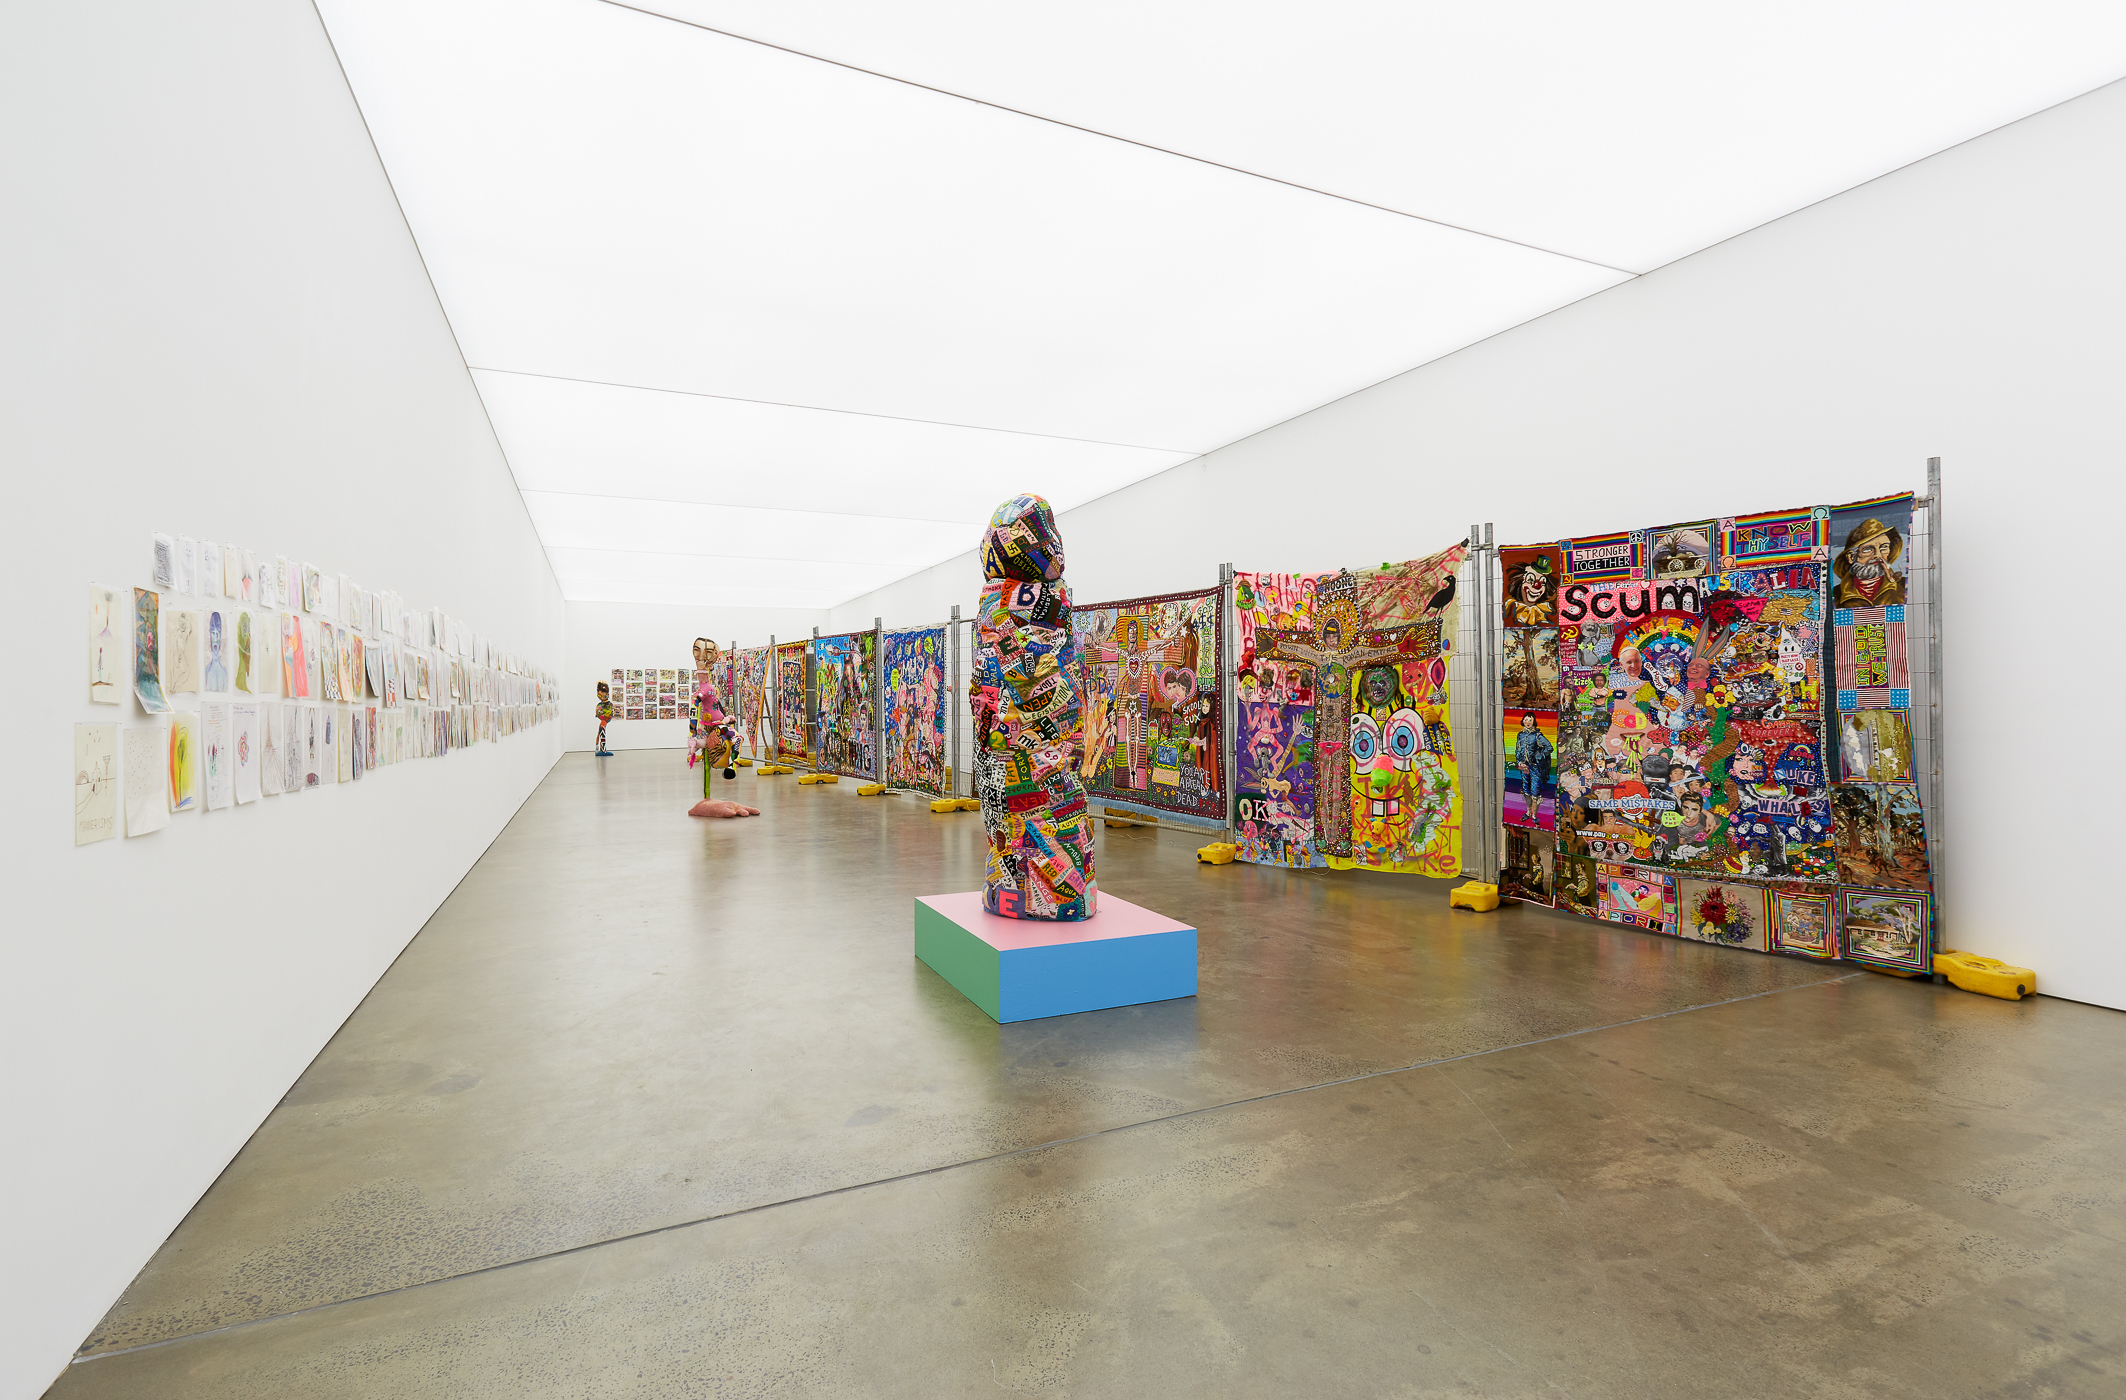 Paul Yore, 'Your Capital is at Risk', Installation view. Photograph: Christo Crocker. Courtesy of the artist and Neon Parc.